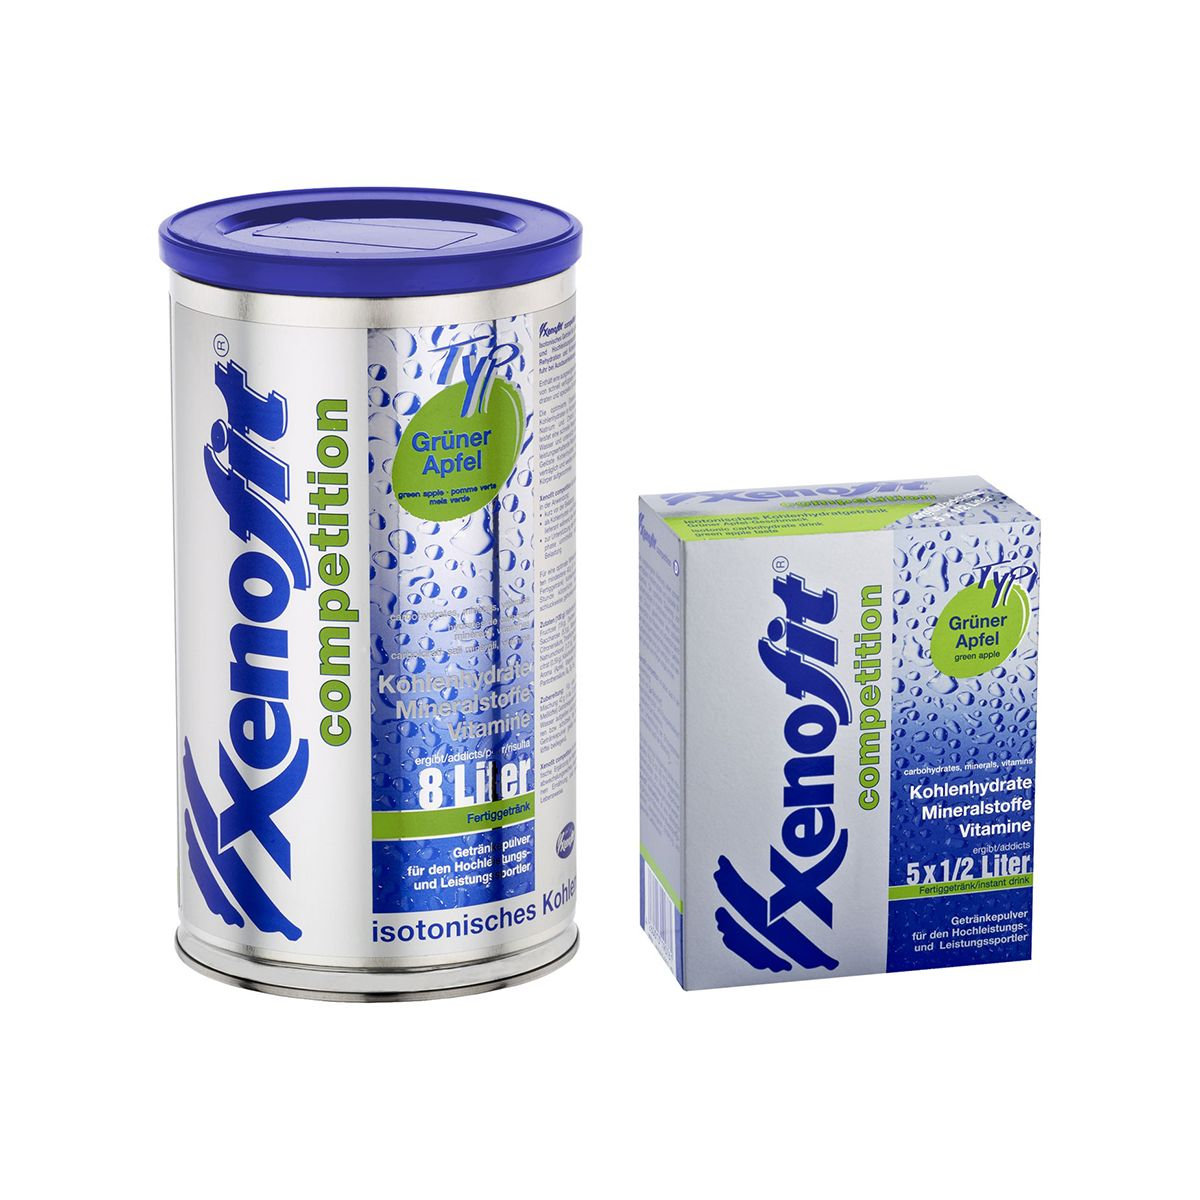 Xenofit competition drink powder | item_misc